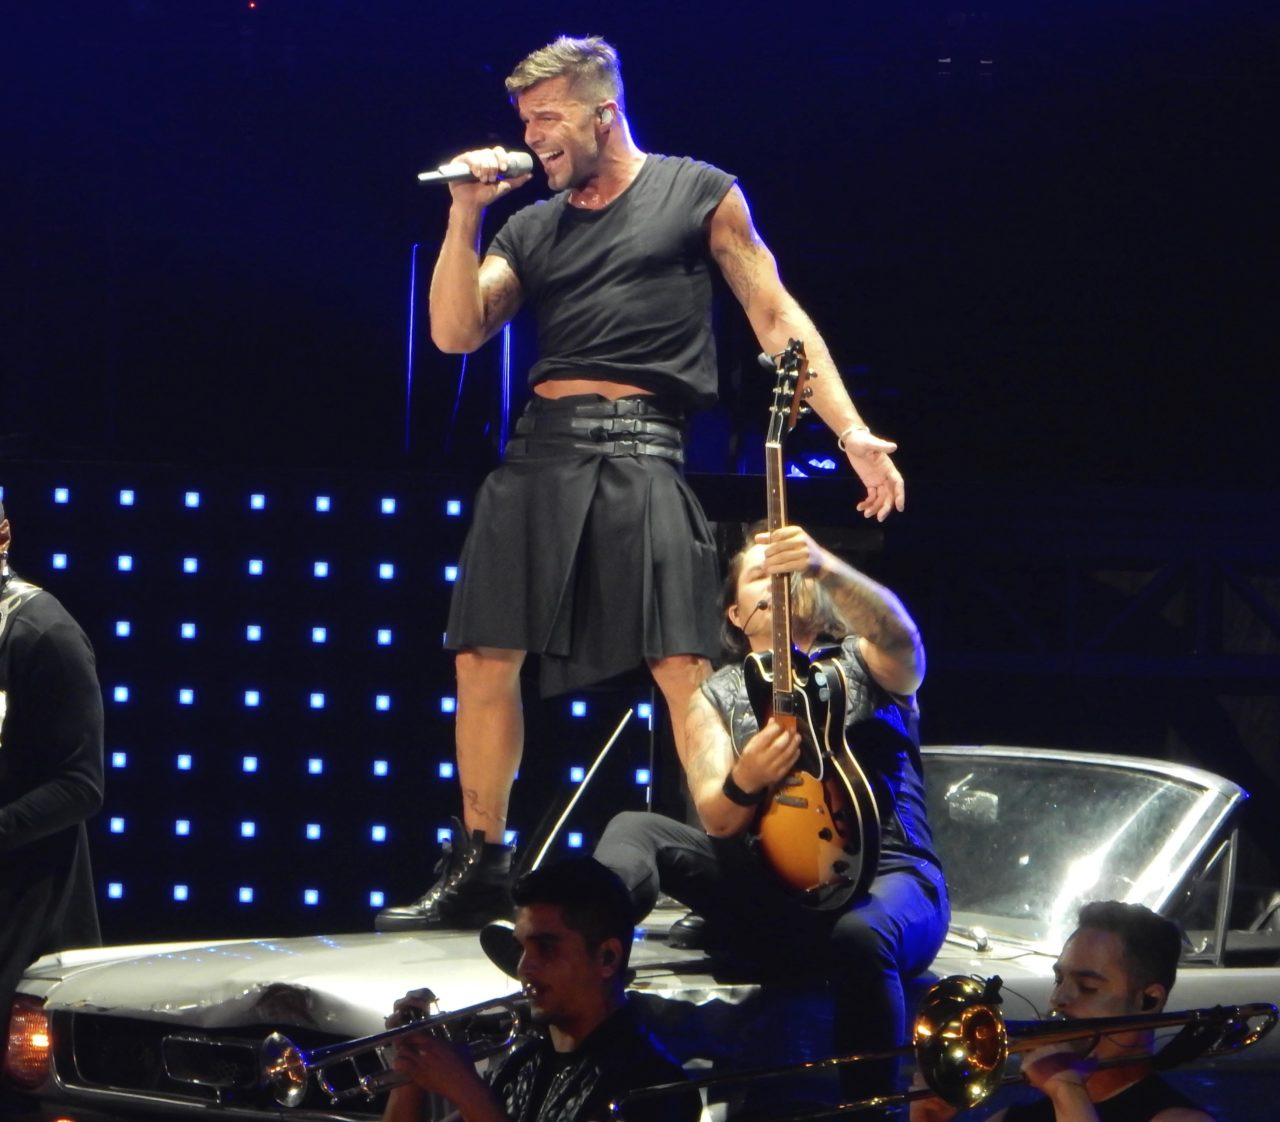 Photo © 2016 Splash News/The Grosby Group  February 12, 2016 in San Juan, Puerto Rico.  Ricky Martin performing in his first concert at the Puerto Rico Coliseum in San Juan.